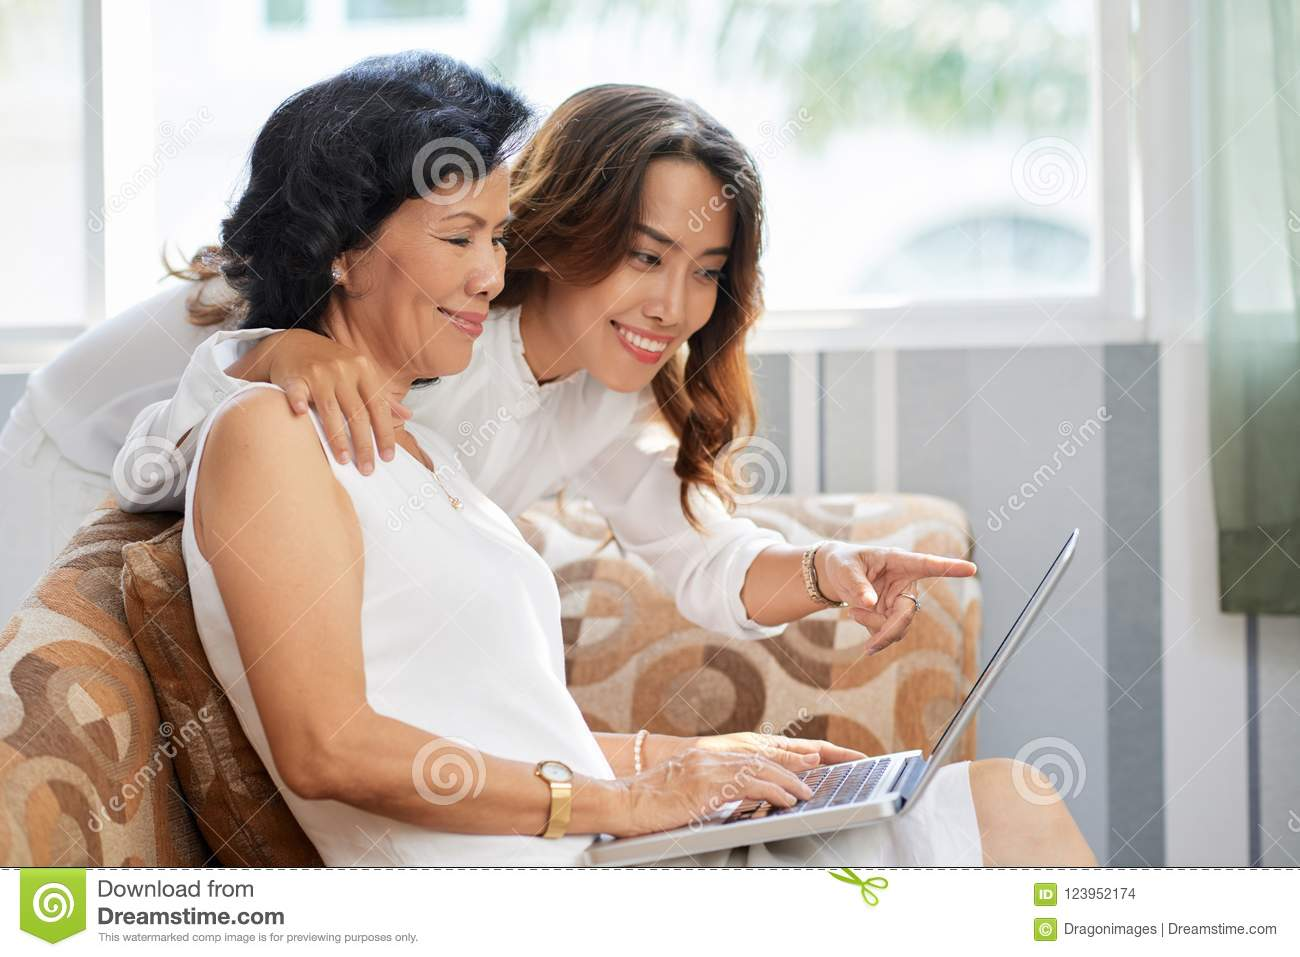 Cheerful Vietnamese Mother And Daughter Watching Videos Or Photos On Laptop Screen